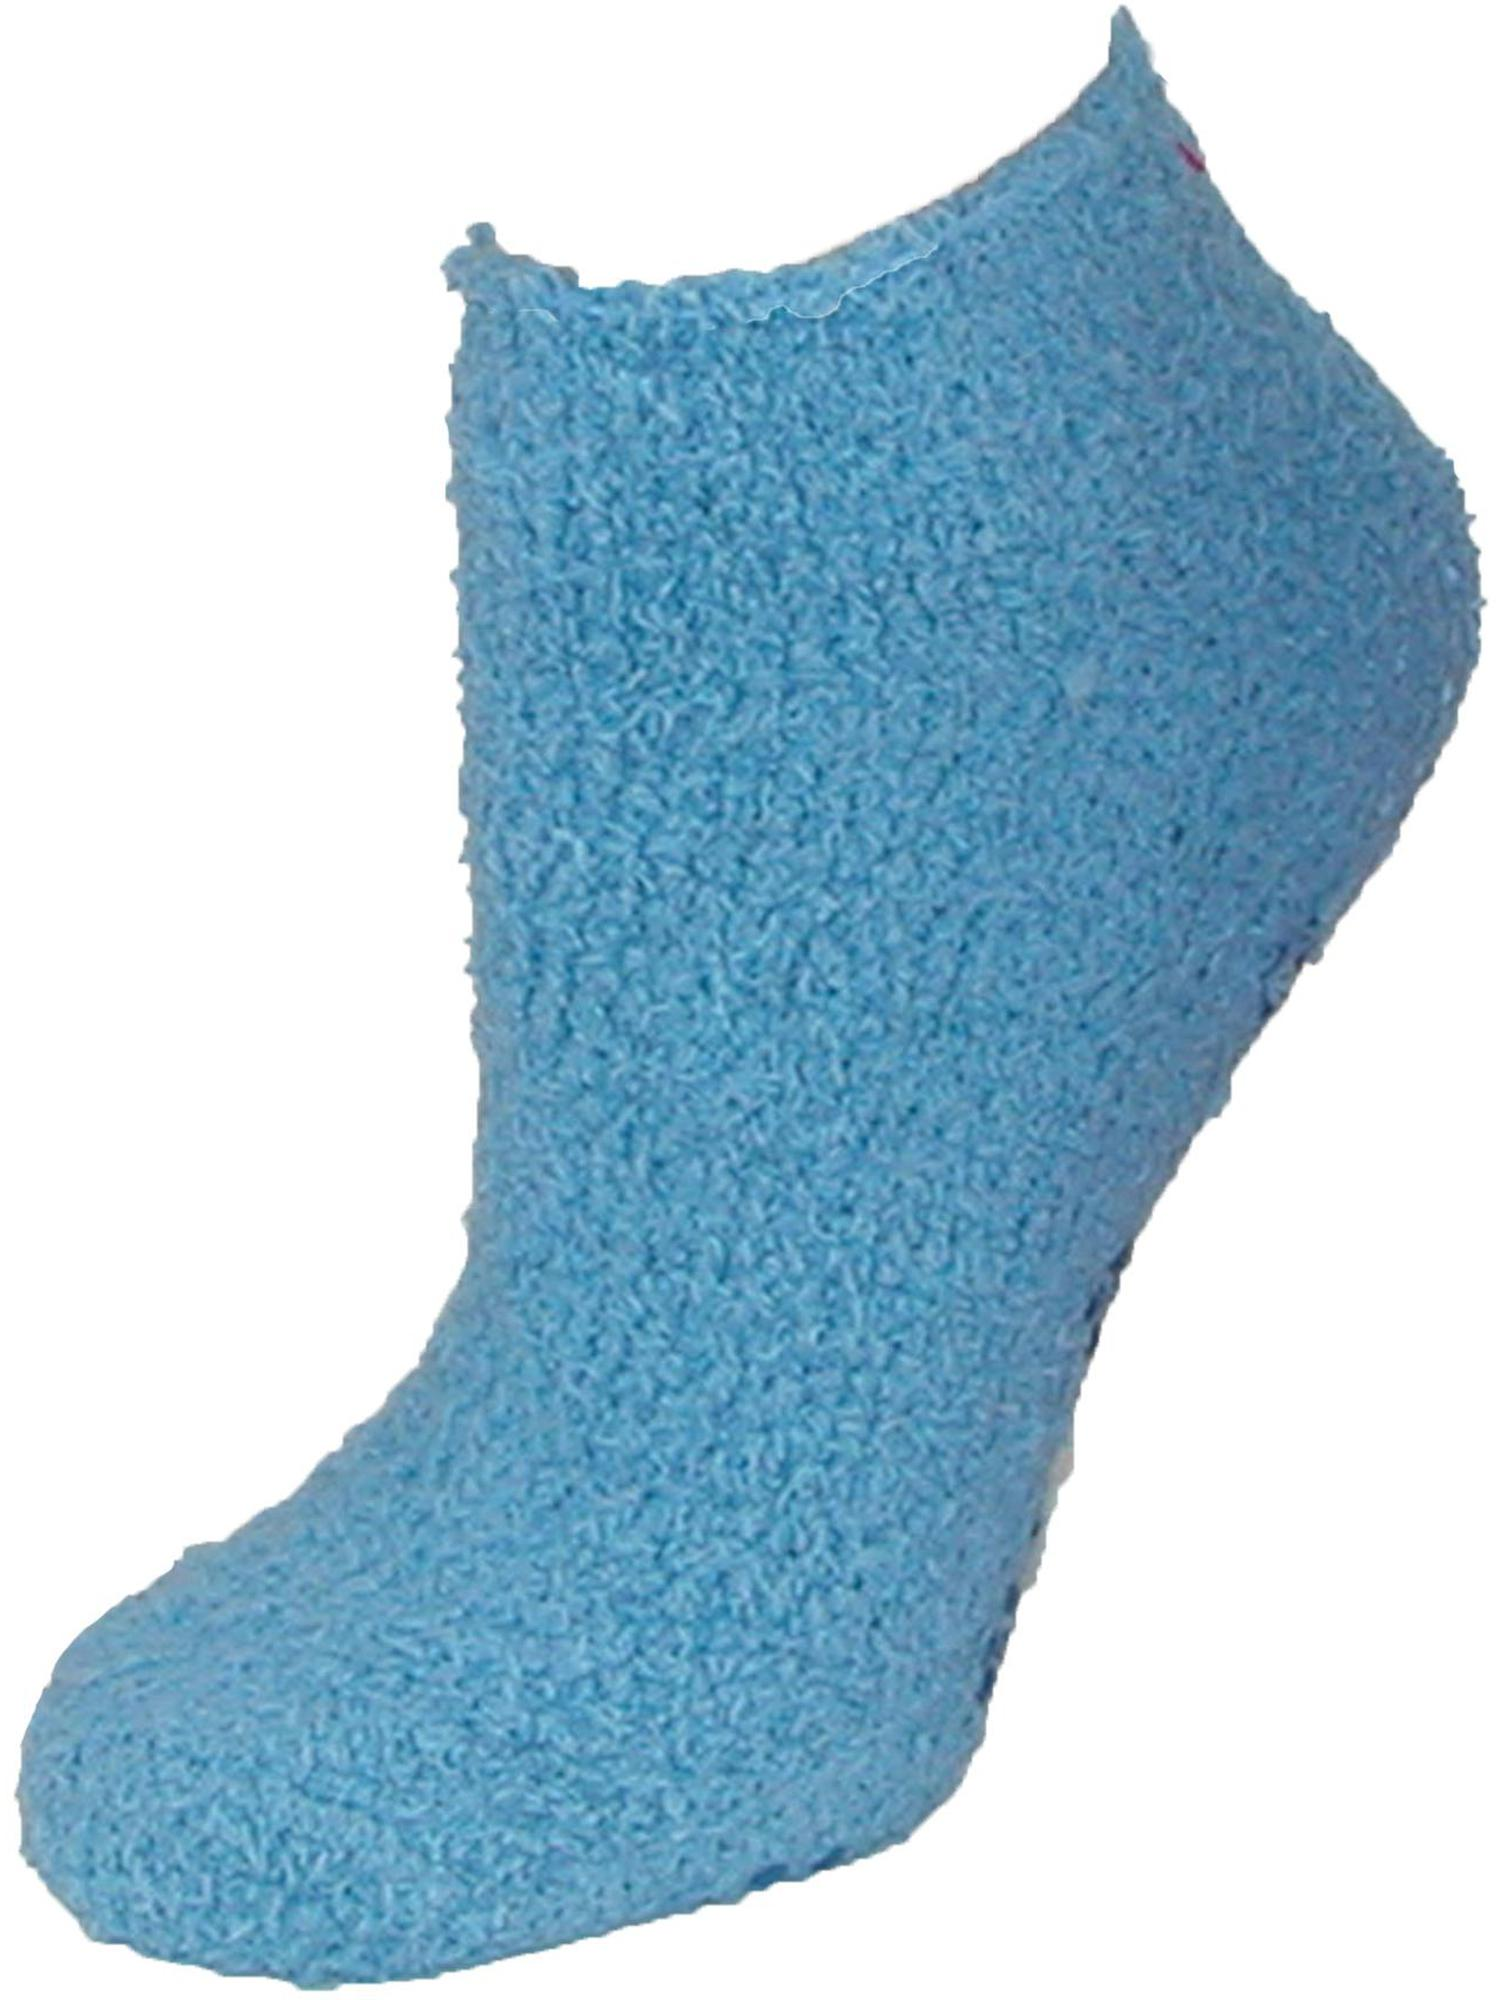 Women's Low Cut Non Slip Slipper Socks (3 Pair Pack), Size: one size